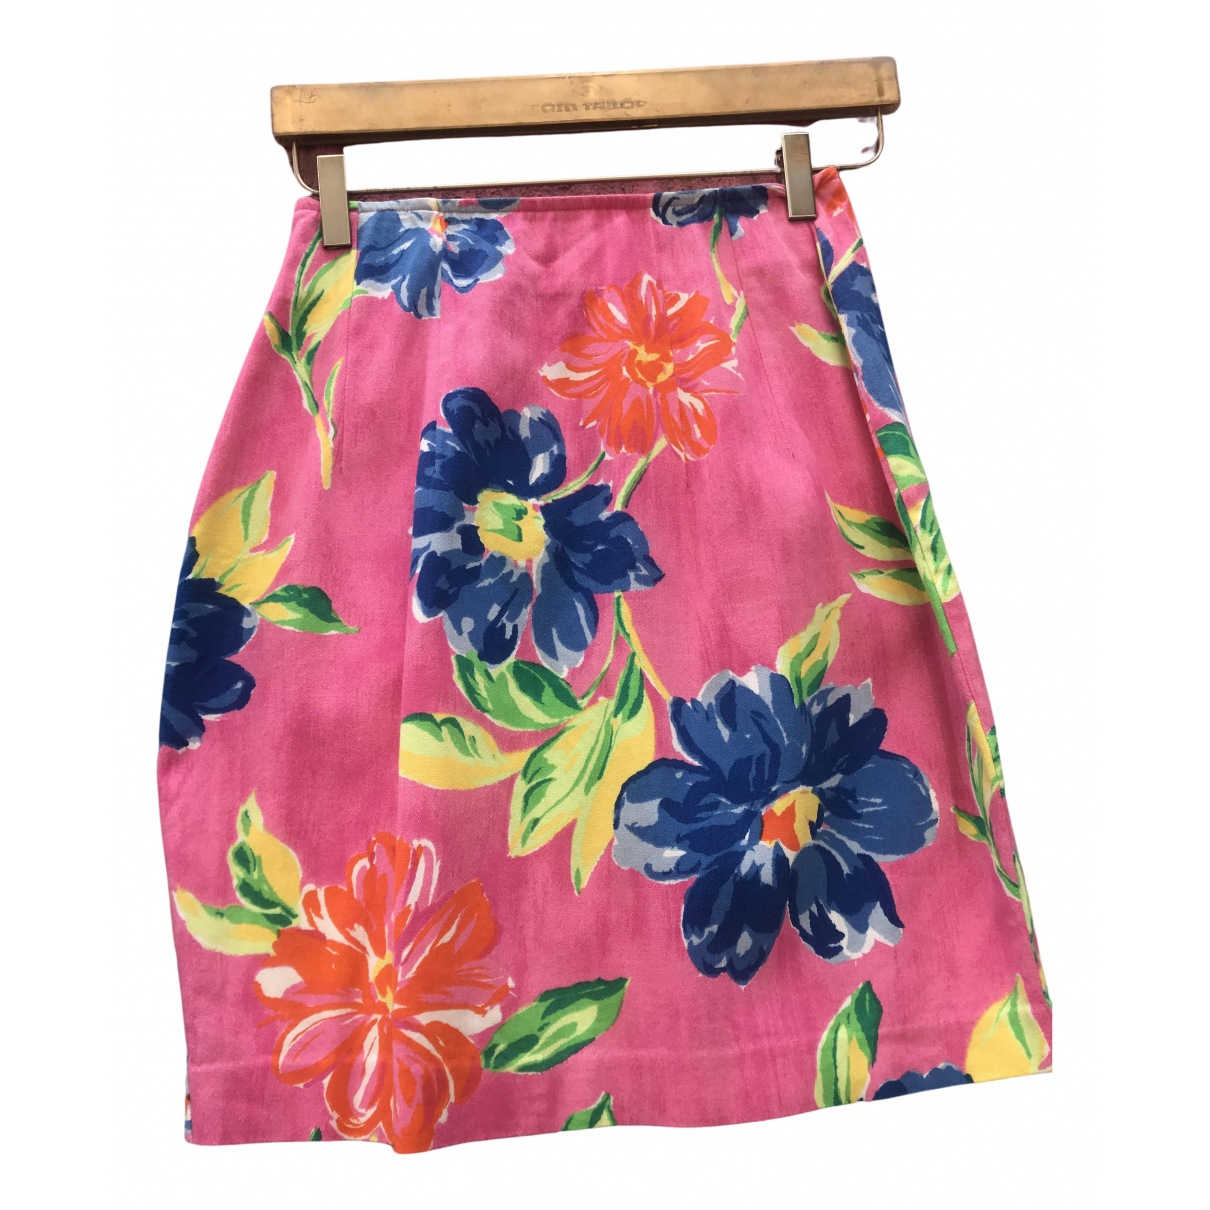 Non Signé / Unsigned N Pink Cotton skirt for Women XS International